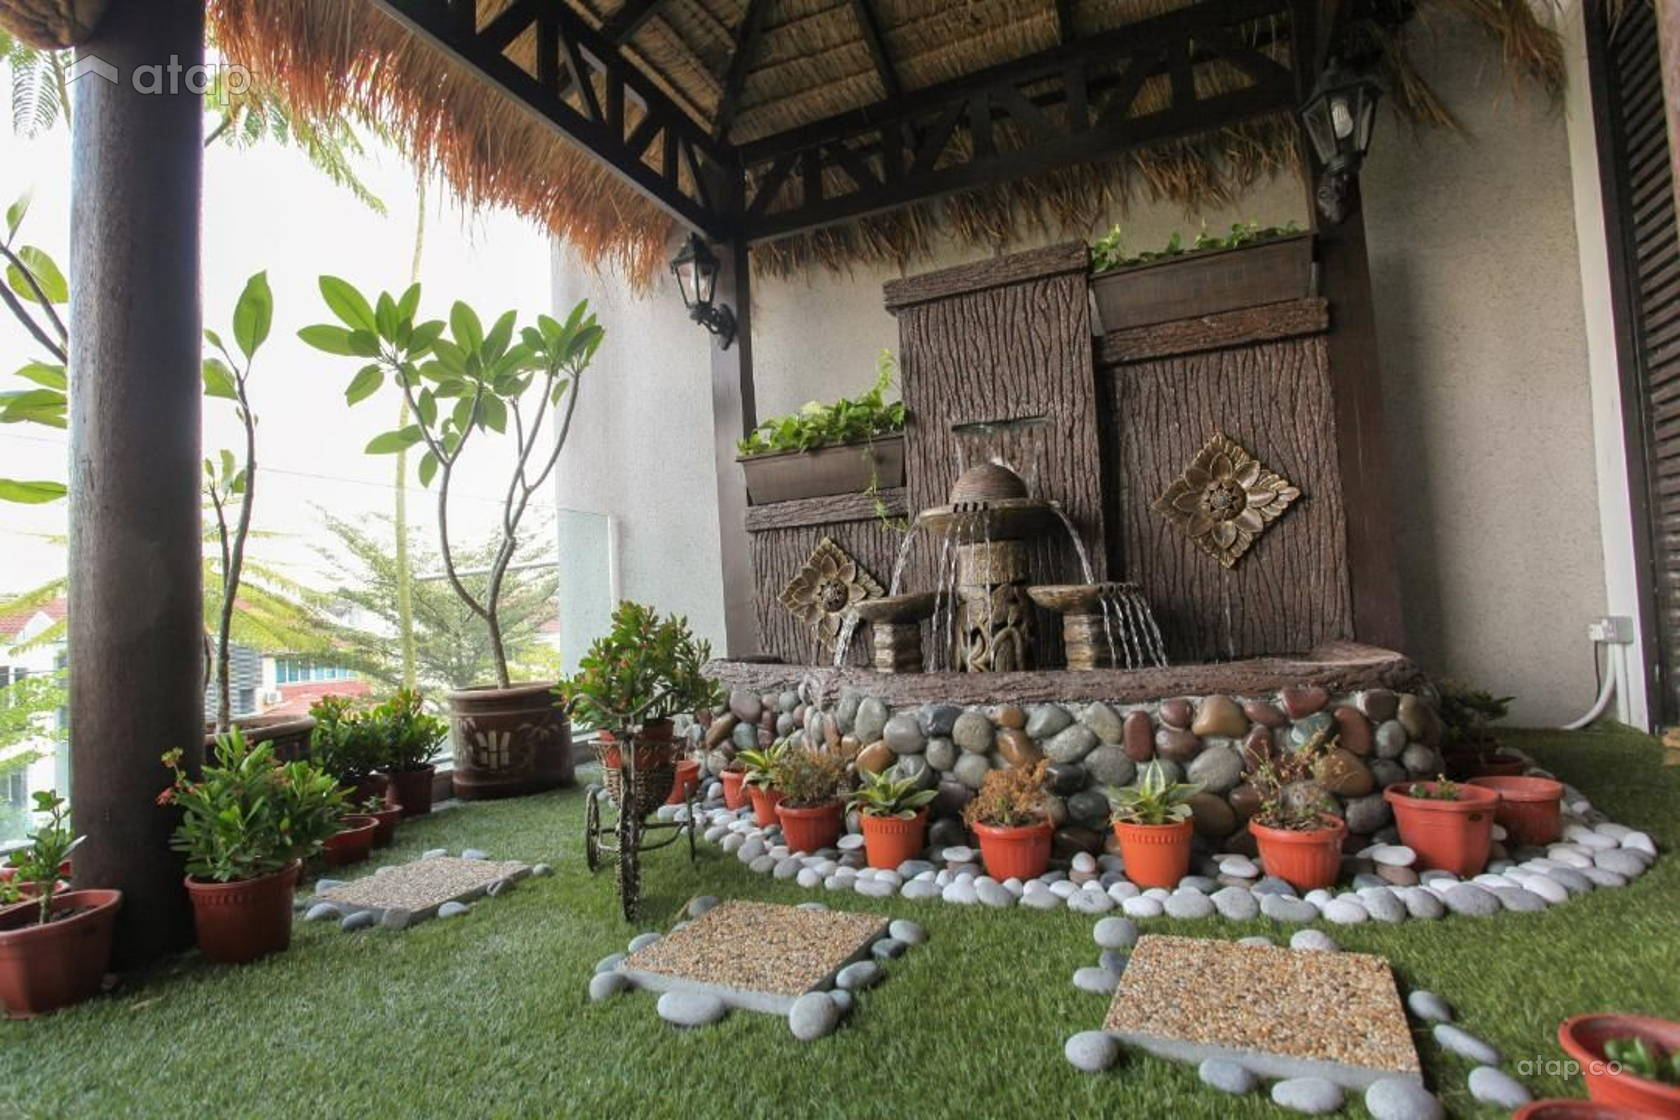 Malaysian Home Garden Ideas To Inspire Your Space Atap Co